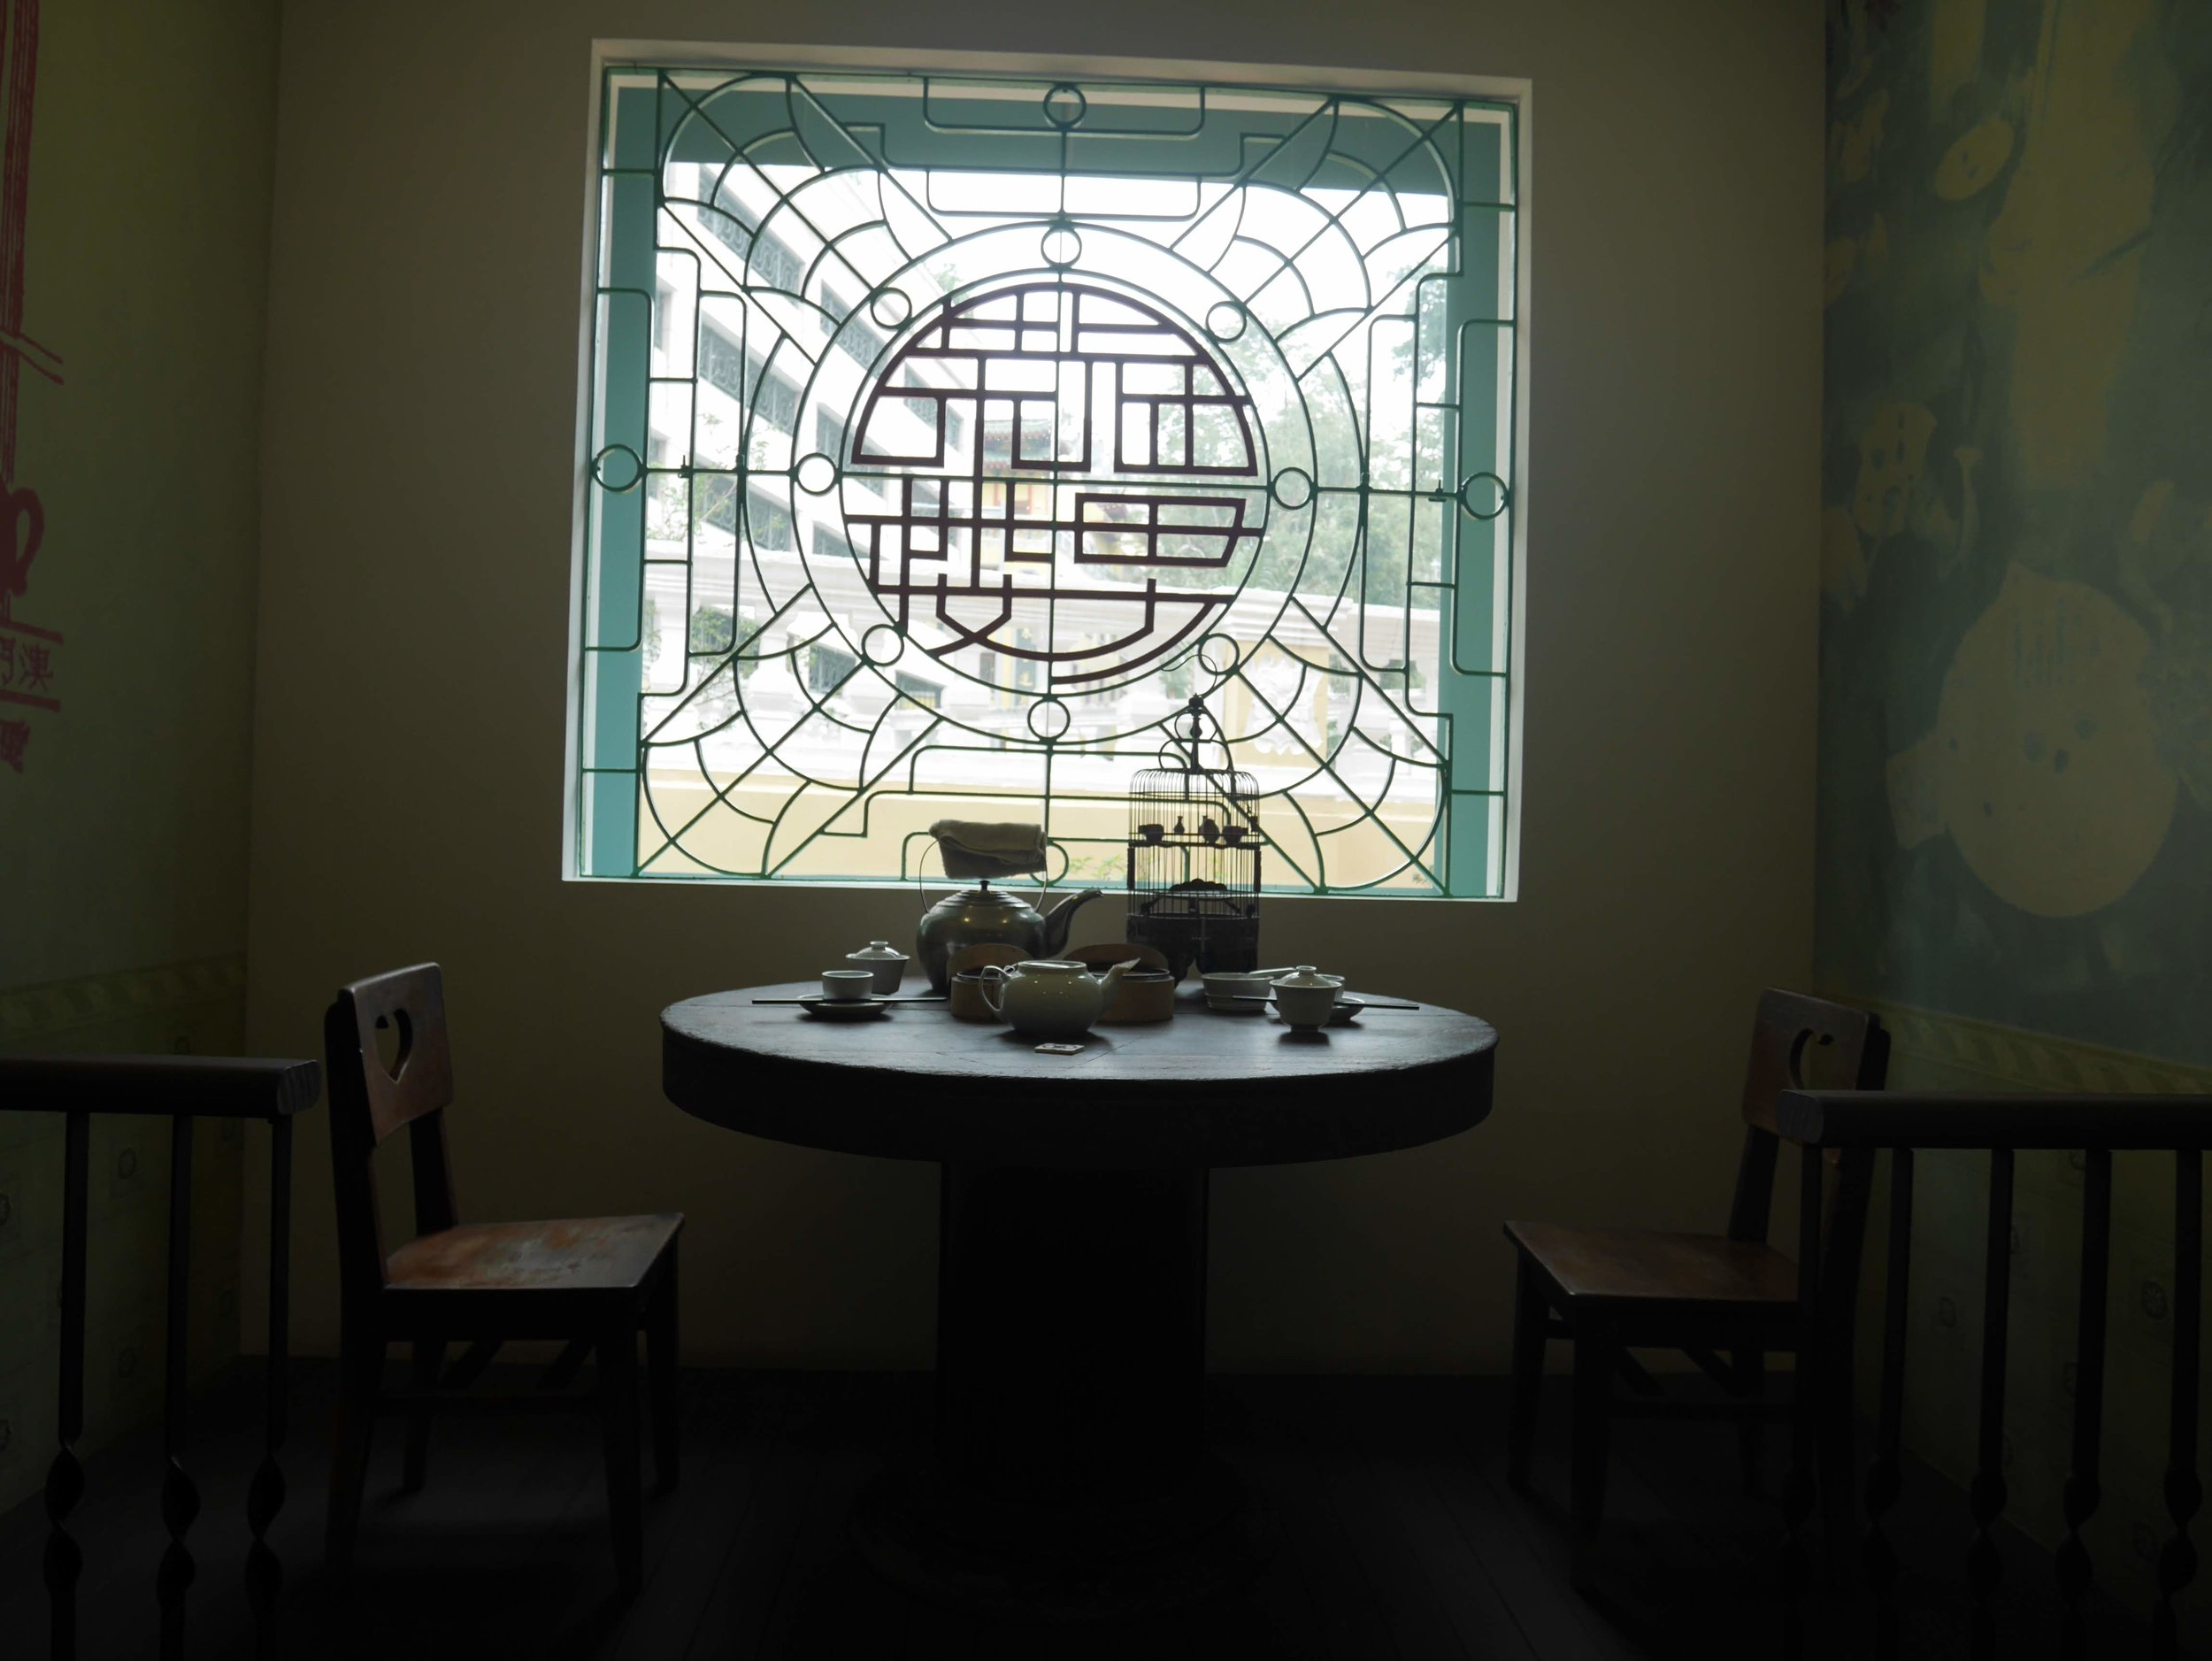 a traditional Chinese tea set inside the Tea Culture House Museum